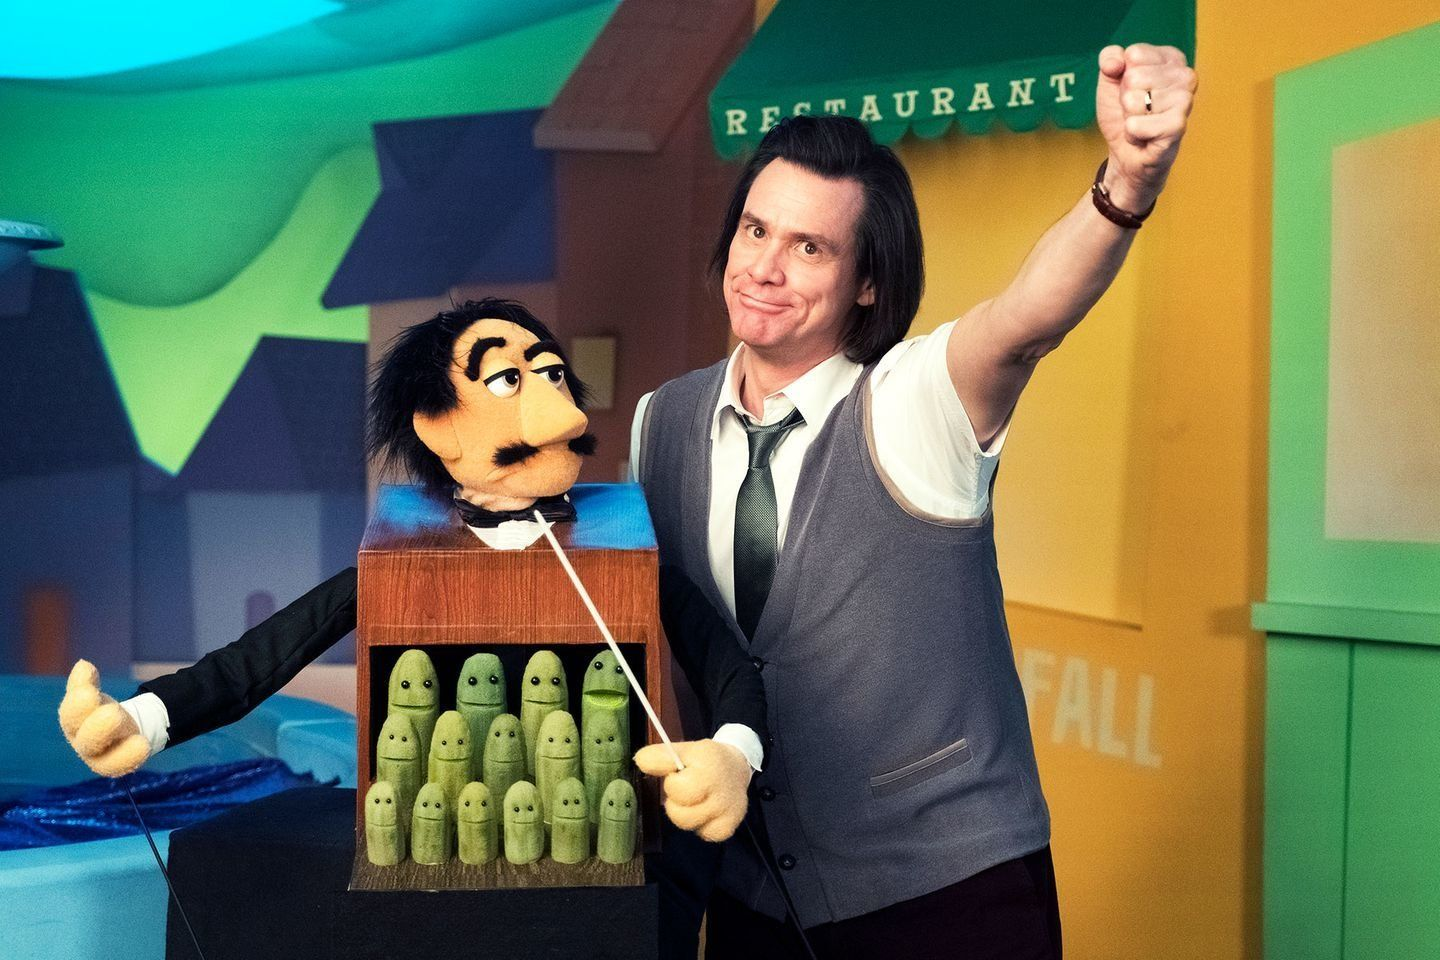 'Kidding' Director Michel Gondry On Reuniting With Jim